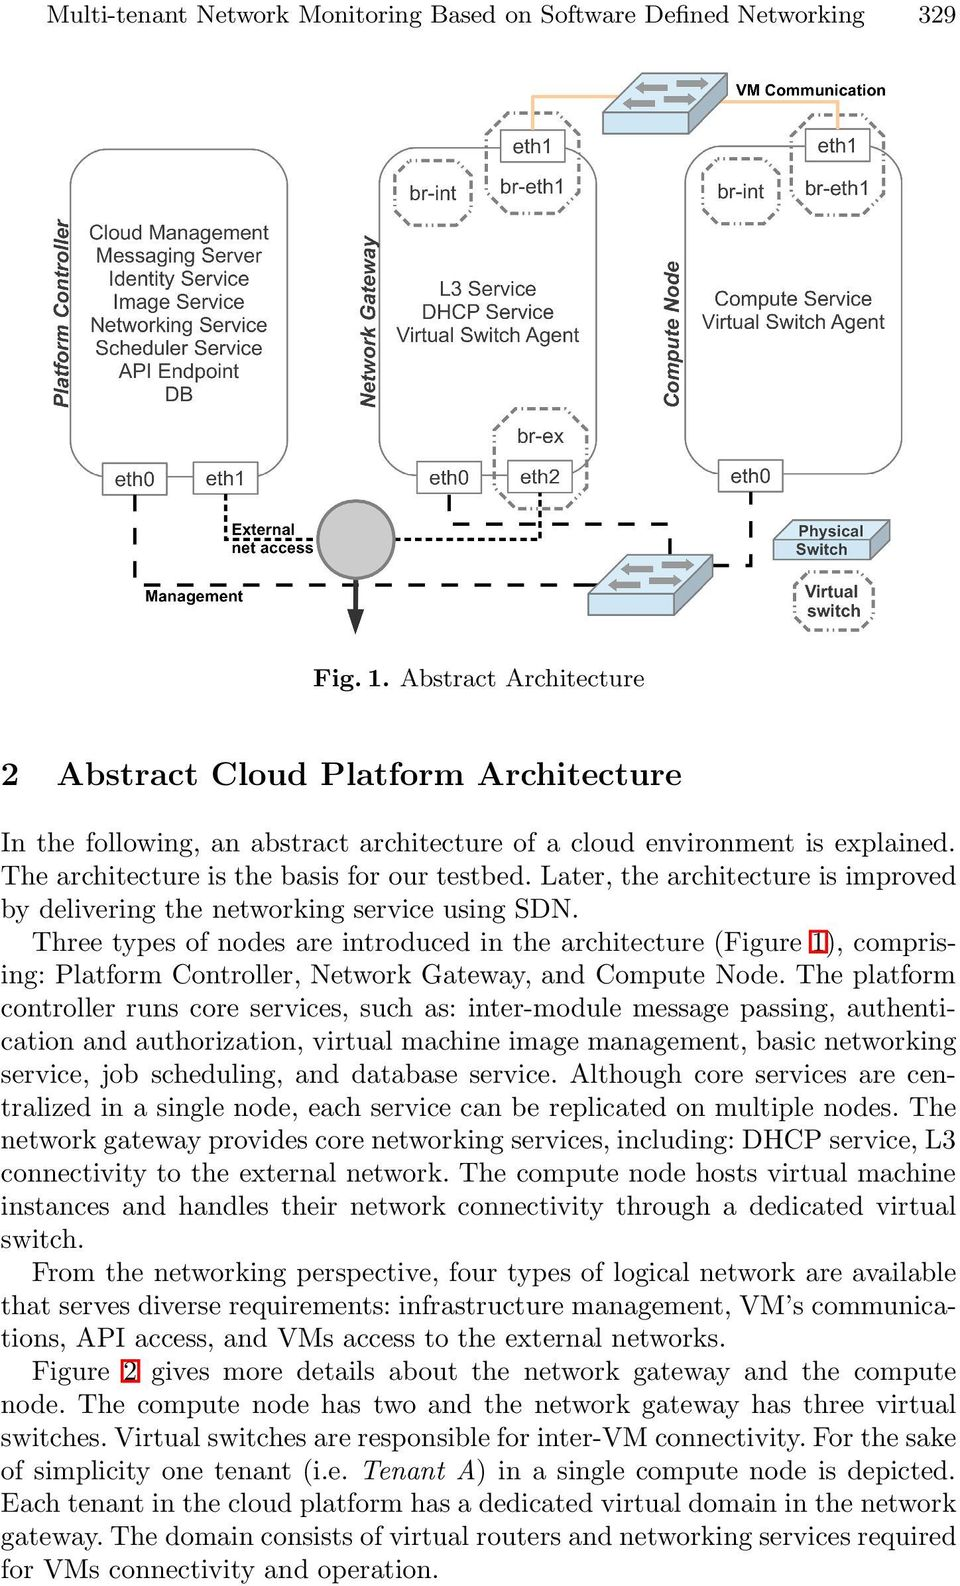 Later, the architecture is improved by delivering the networking service using SDN.